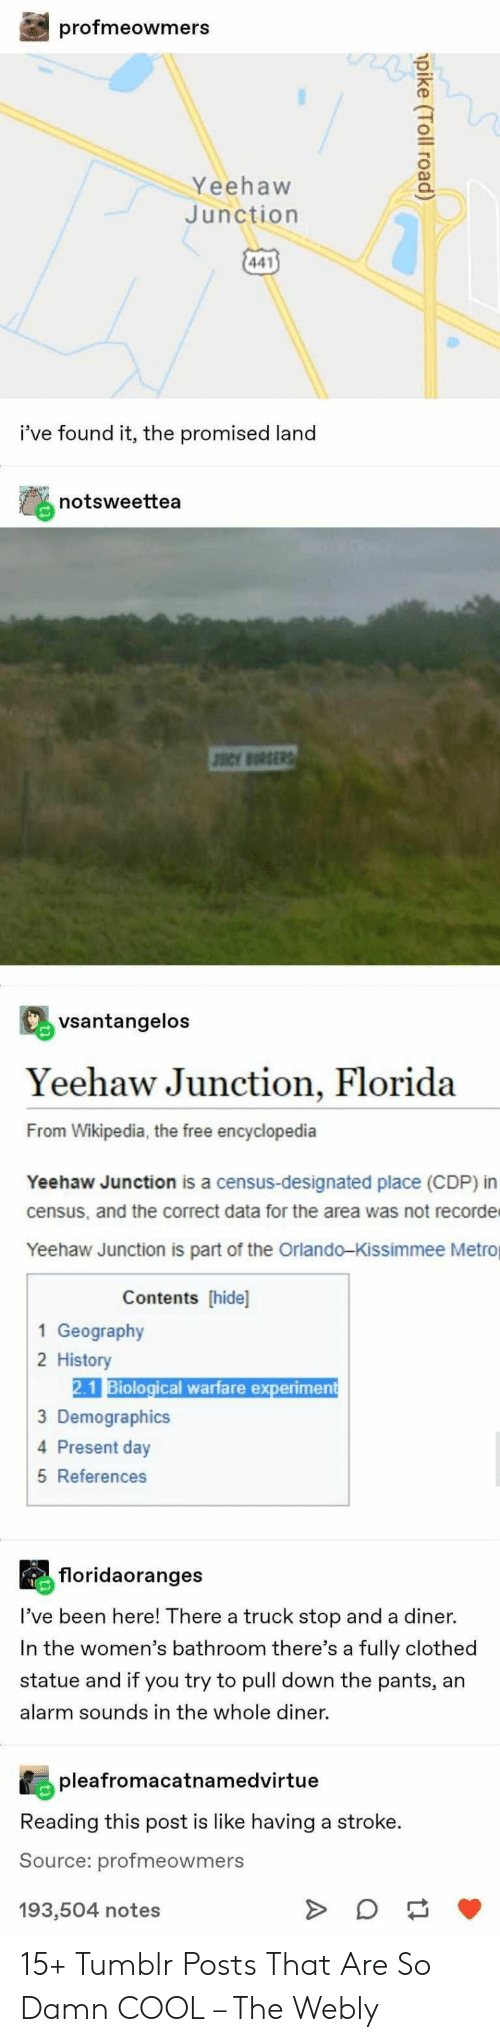 Tumblr, Wikipedia, and Alarm: profmeowmers  Yeehaw  Junction  441  i've found it, the promised land  notsweettea  JSCY BURGERS  vsantangelos  Yeehaw Junction, Florida  From Wikipedia, the free encyclopedia  Yeehaw Junction is a census-designated place (CDP) in  census, and the correct data for the area was not recorde  Yeehaw Junction is part of the Orlando-Kissimmee Metro  Contents [hide]  1 Geography  2 History  2.1 Biological warfare experiment  3 Demographics  4 Present day  5 References  floridaoranges  I've been here! There a truck stop and a diner.  In the women's bathroom there's a fully clothed  statue and if you try to pull down the pants, an  alarm sounds in the whole diner  pleafromacatnamedvirtue  Reading this post is like having a stroke.  Source: profmeowmers  notes  pike (Toll road) 15+ Tumblr Posts That Are So Damn COOL – The Webly